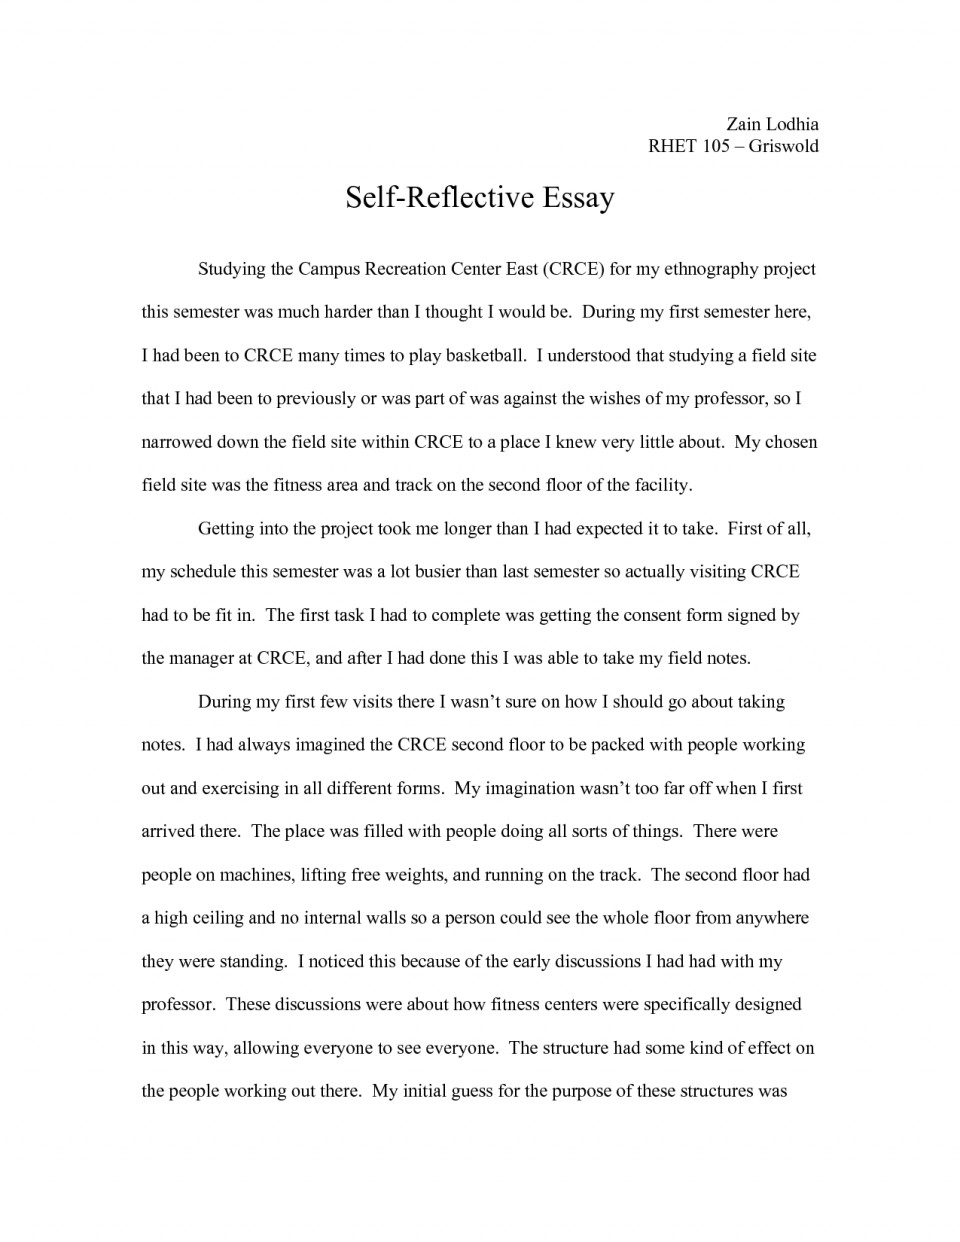 018 Qal0pwnf46 Free English Essays On Different Topics Essay Dreaded In 960